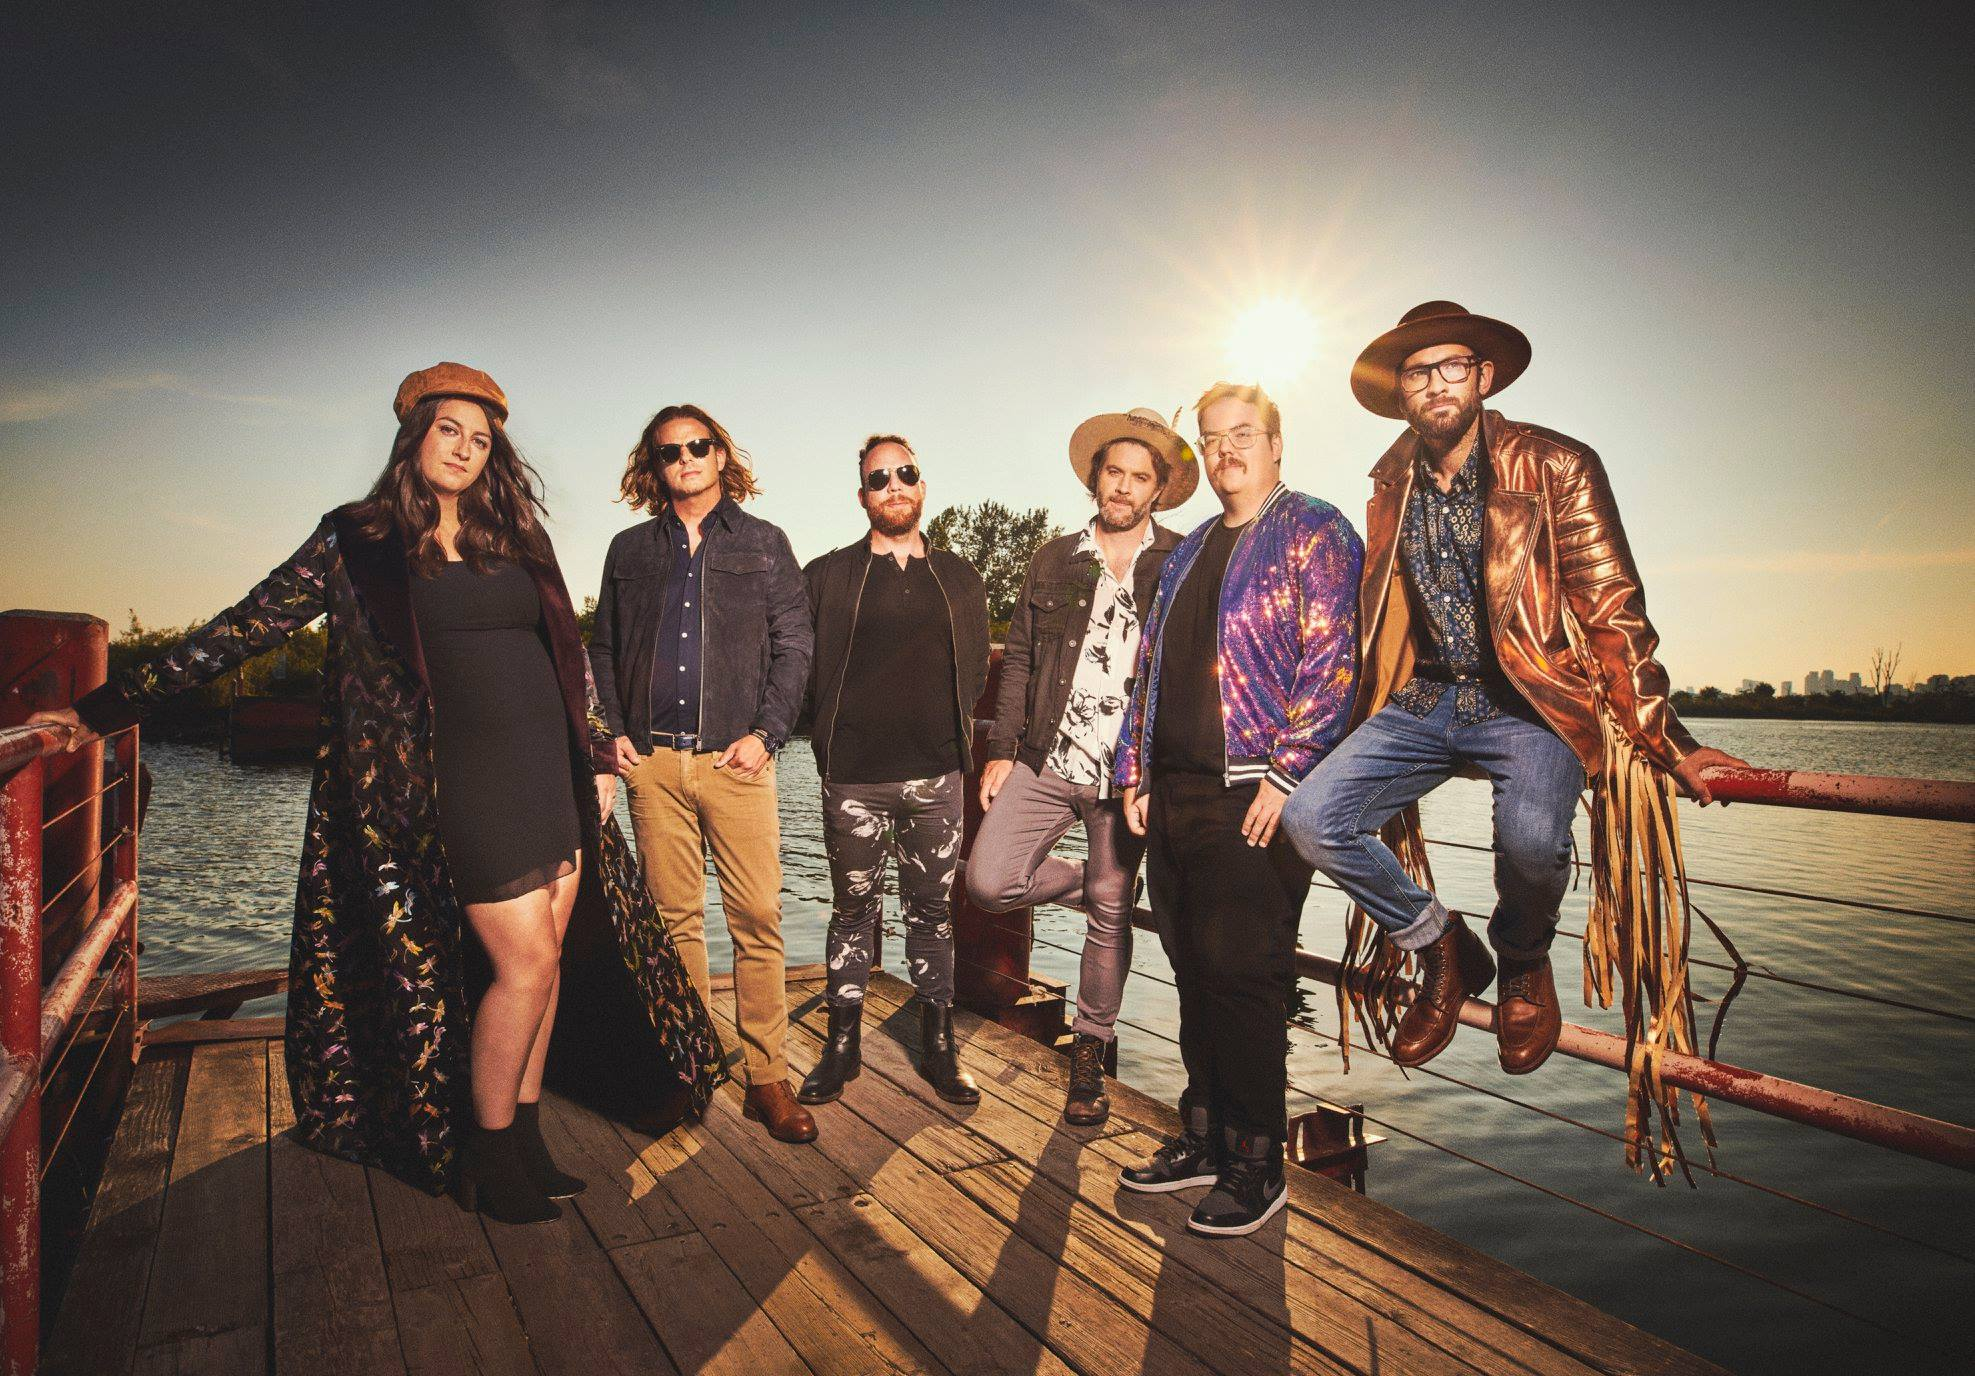 the strumbellas - canada - indie rock - indie pop - indie music - new music - music blog - indie blog - wolf in a suit - wolfinasuit - wolf in a suit blog - wolf in a suit music blog